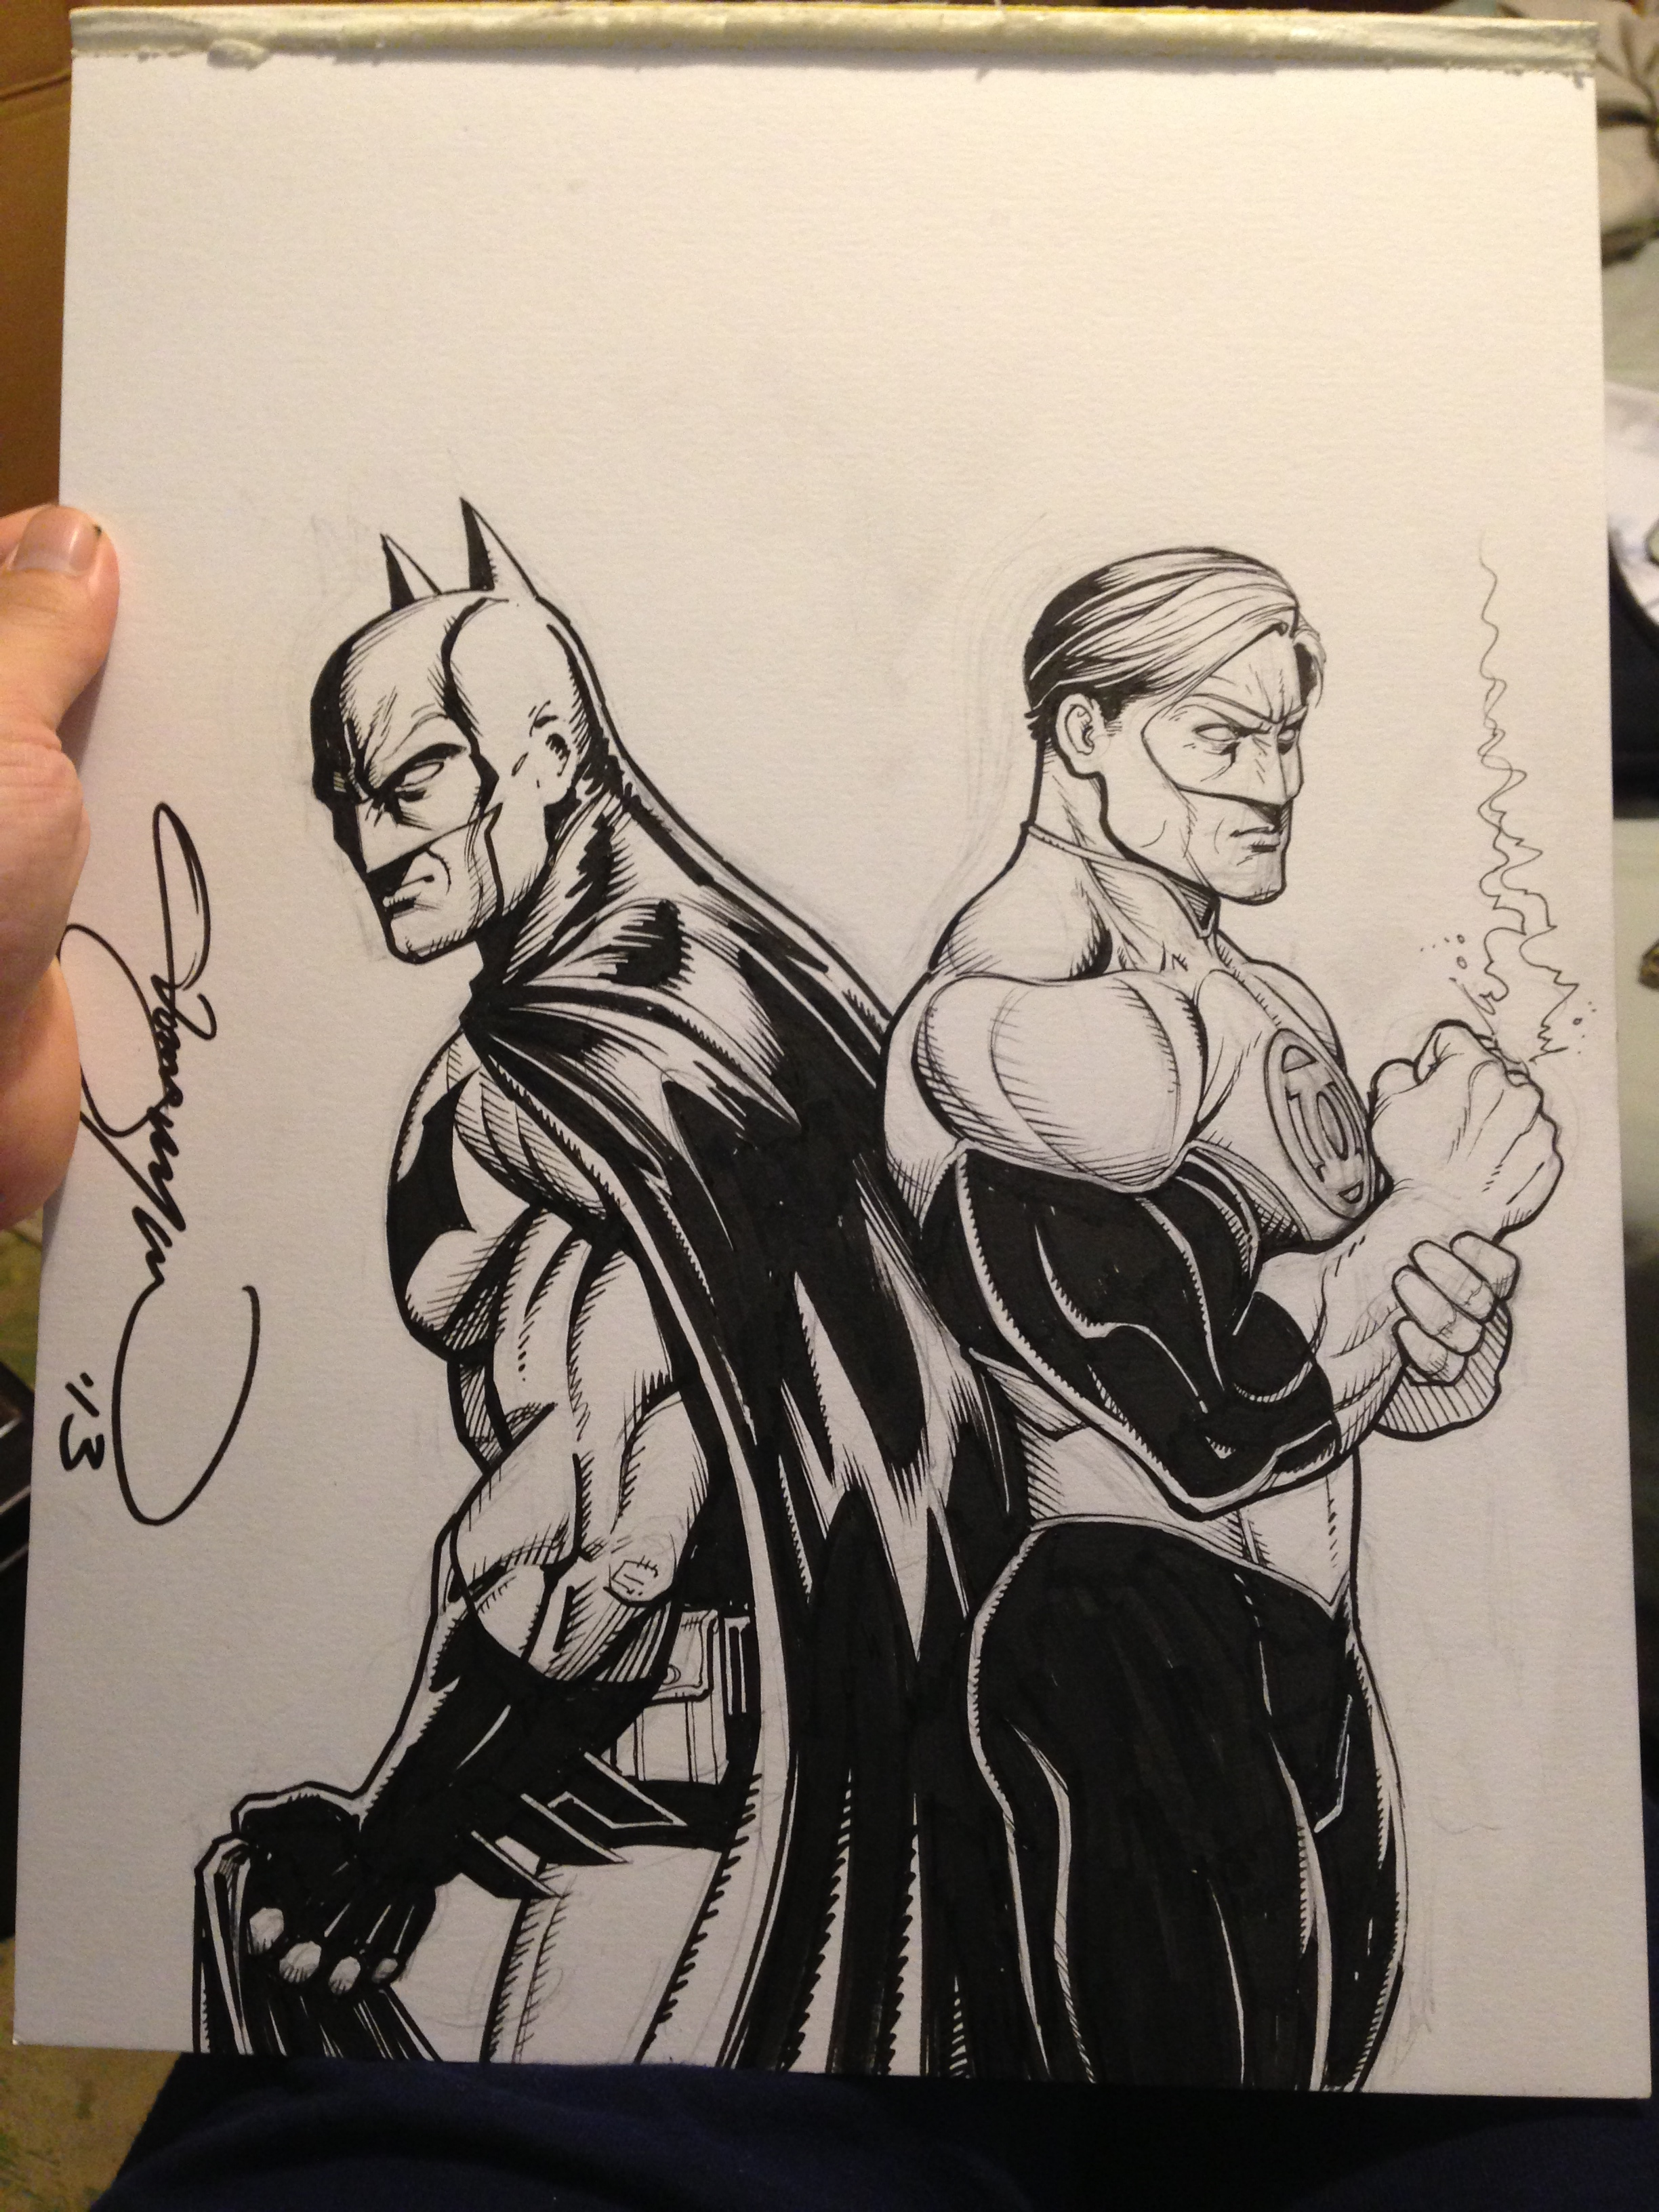 Batman/Green Lantern commission for Scott and his son from the Knoxville area.